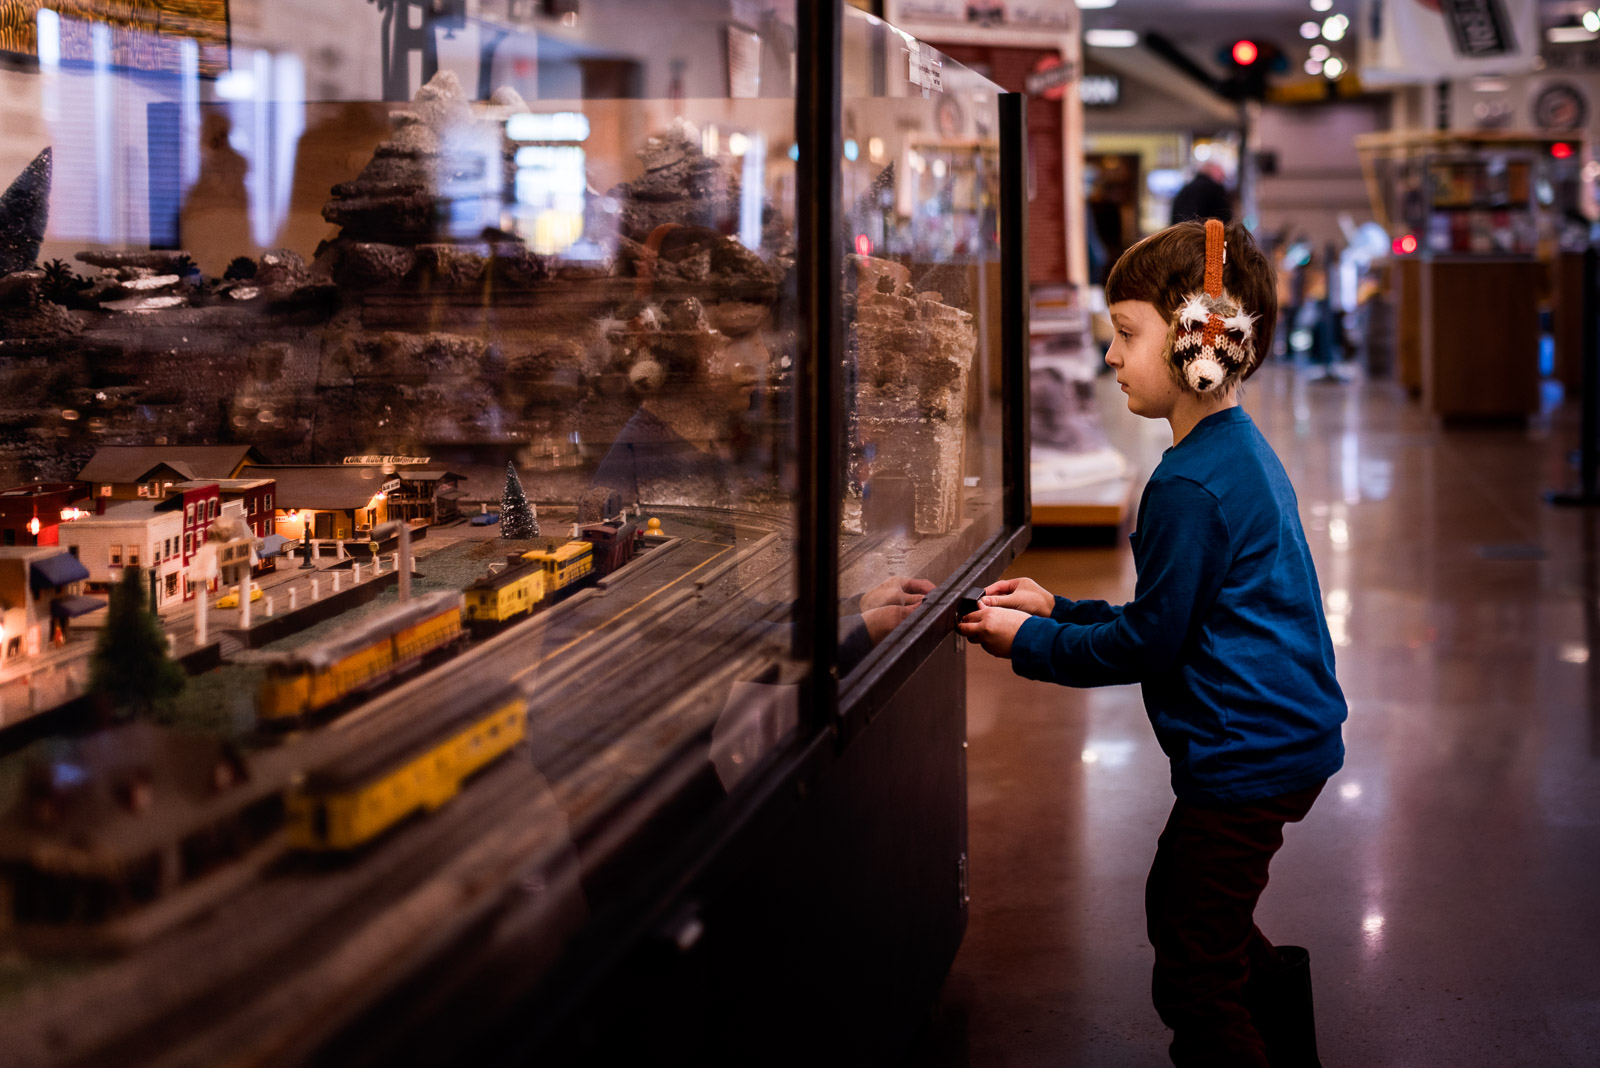 Photographing struggle - autistic child photo with train set